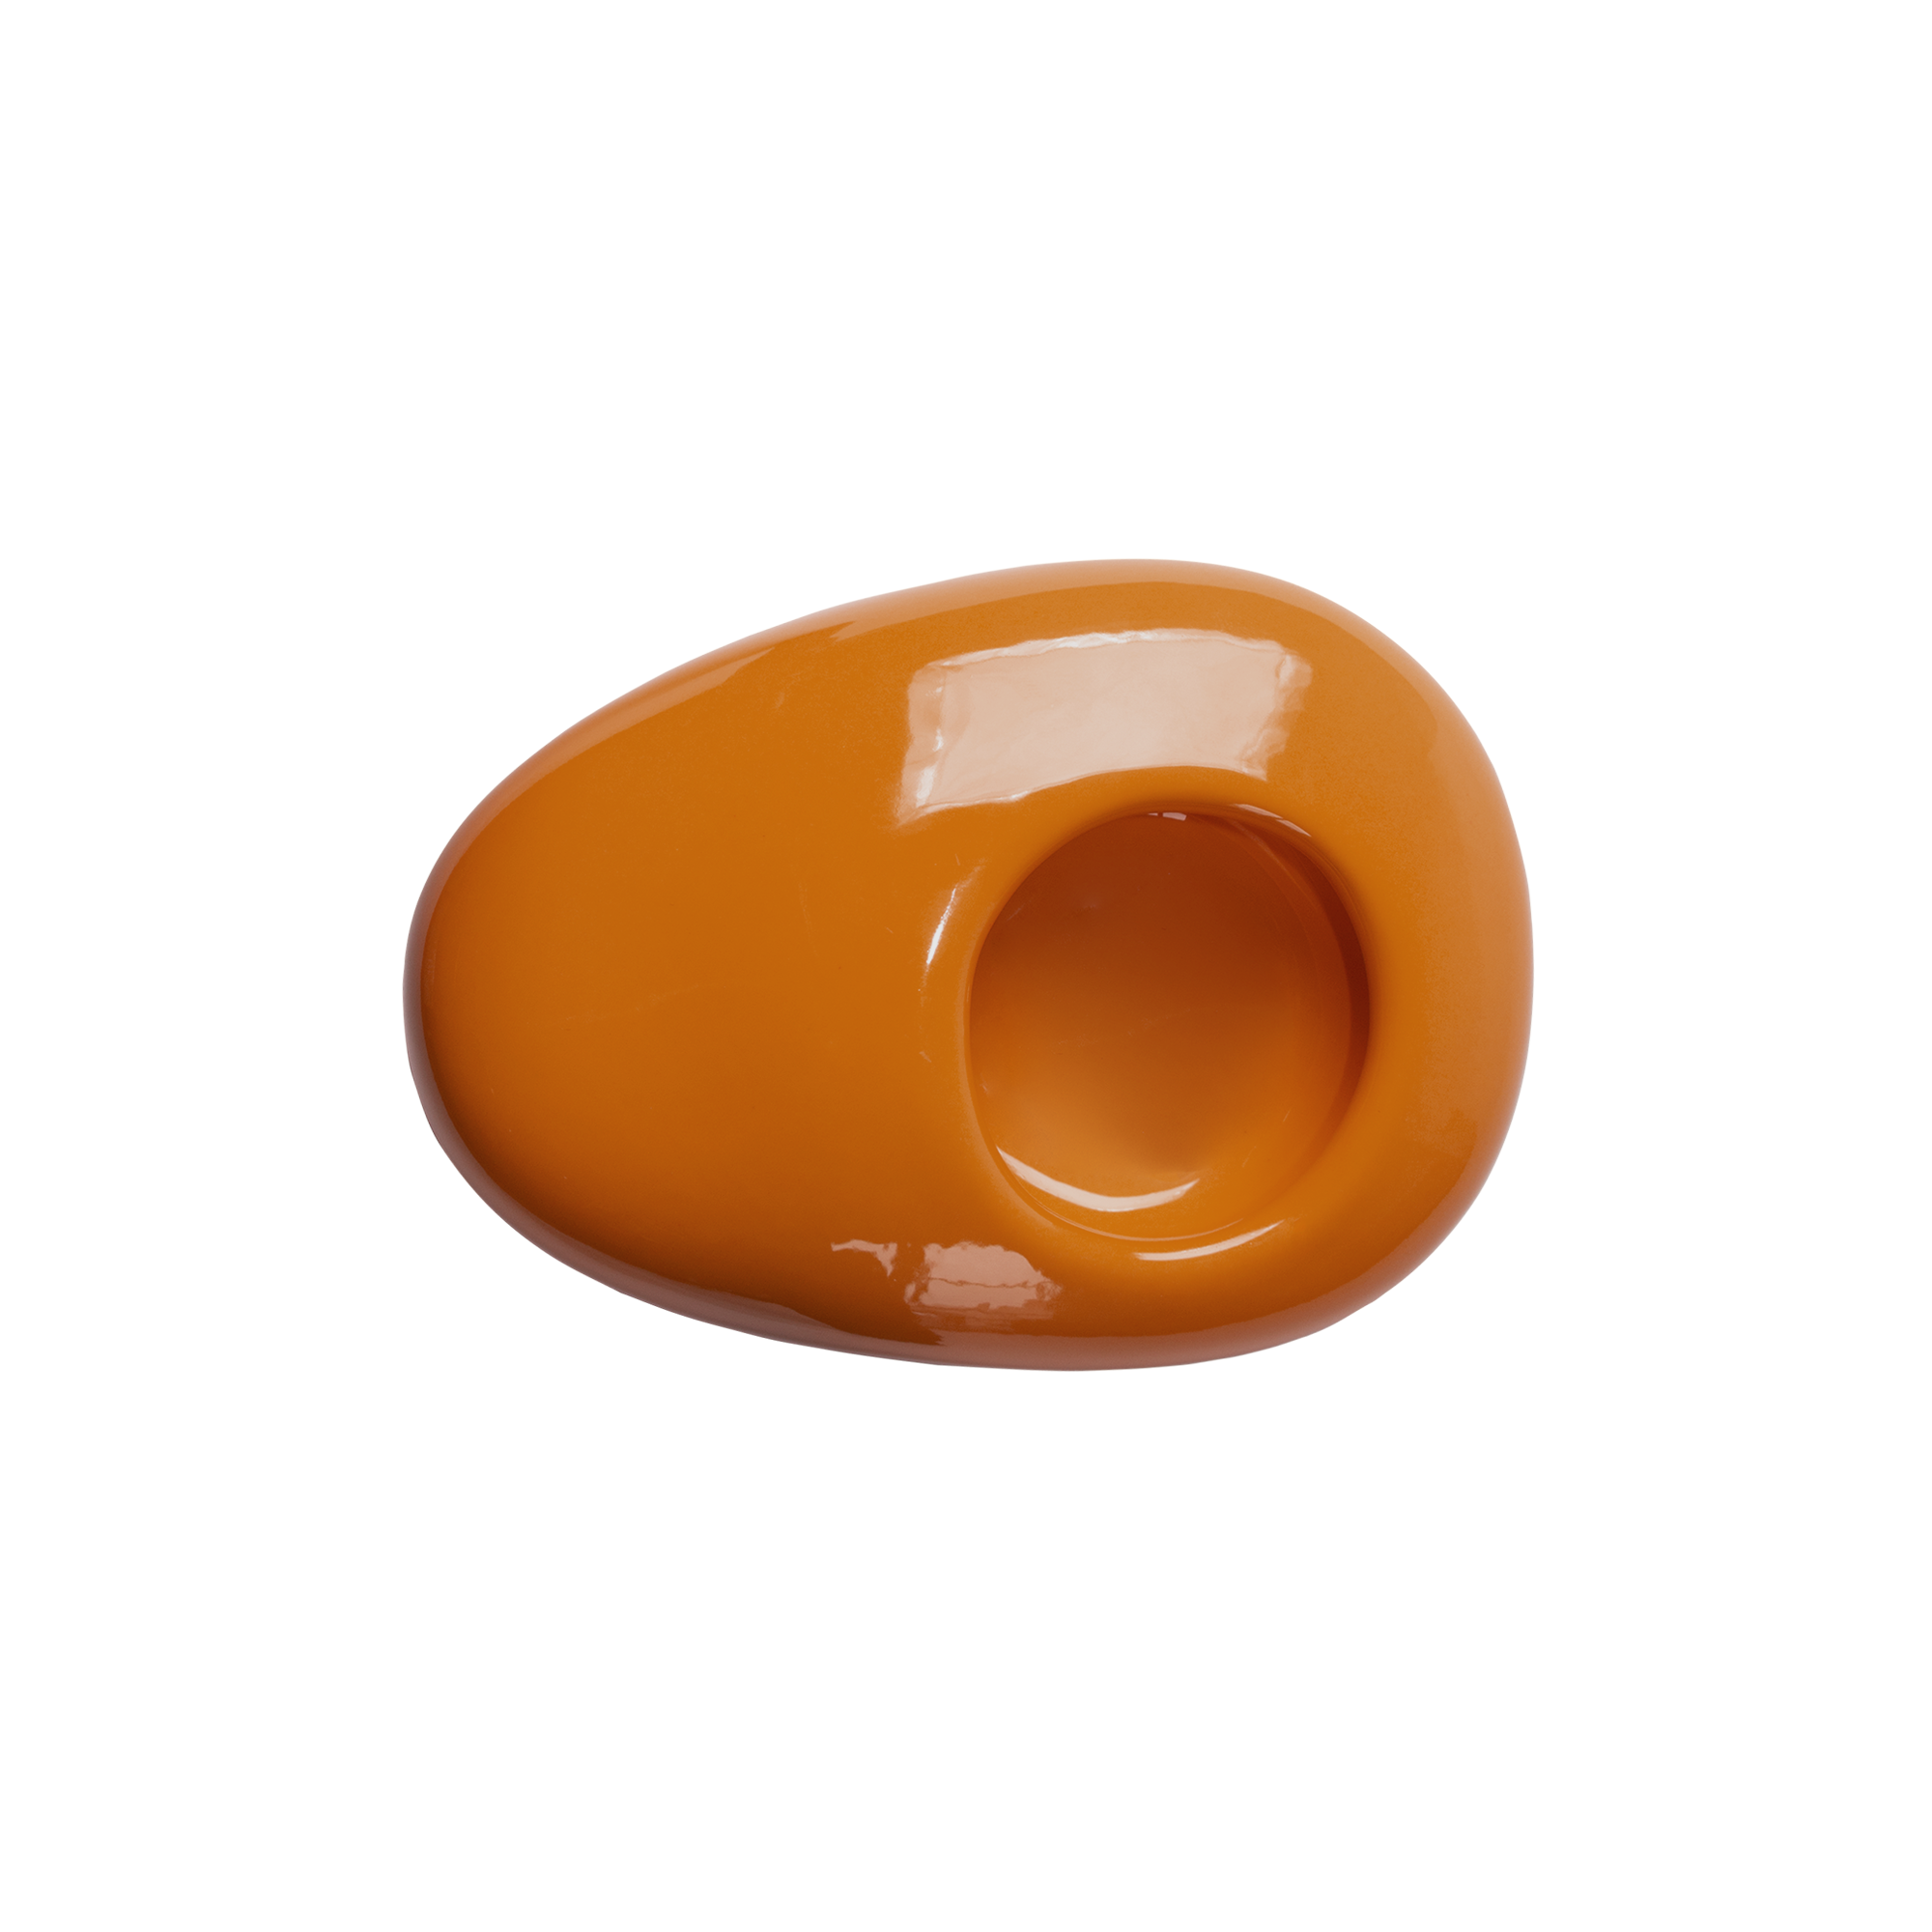 Smoking no smoking - ORANGE - India Mahdavi